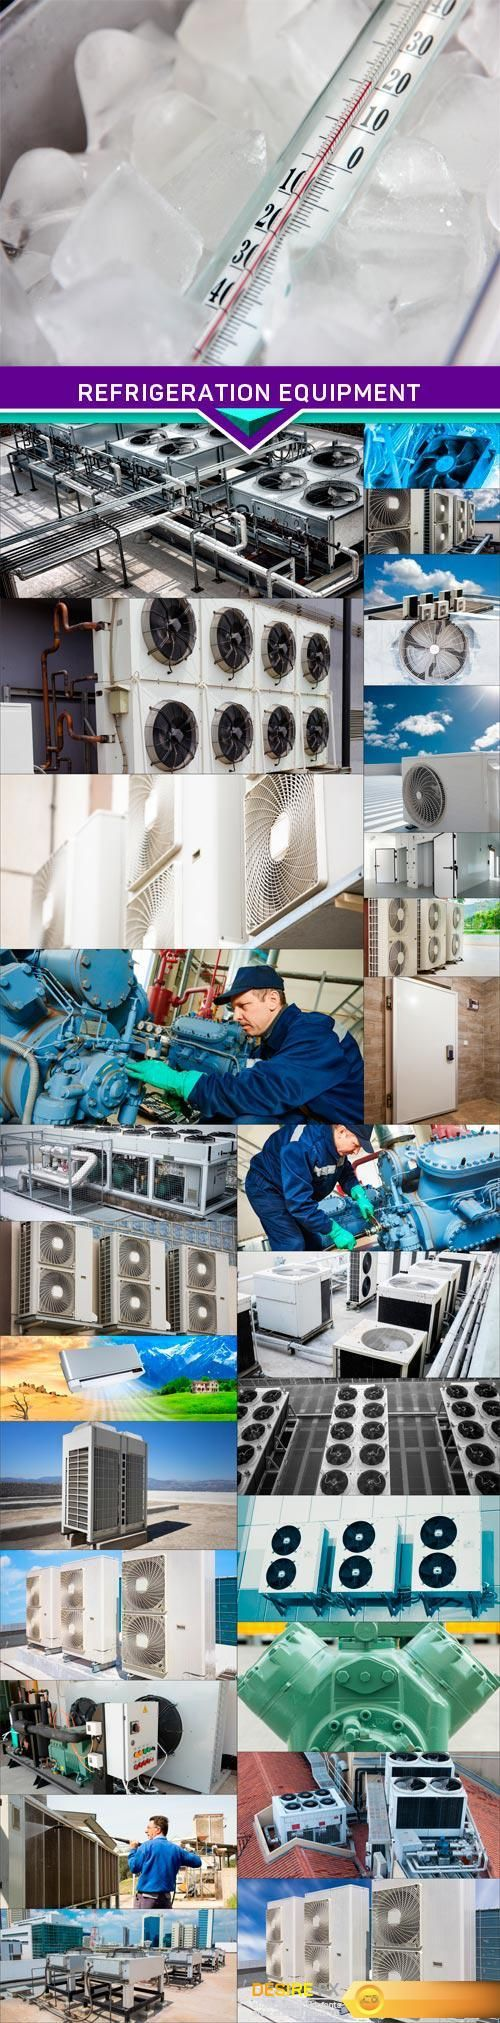 Industrial refrigeration equipment and air conditioning systems 28X JPEG  http://www.desirefx.me/industrial-refrigeration-equipment-and-air-conditioning-systems-28x-jpeg/